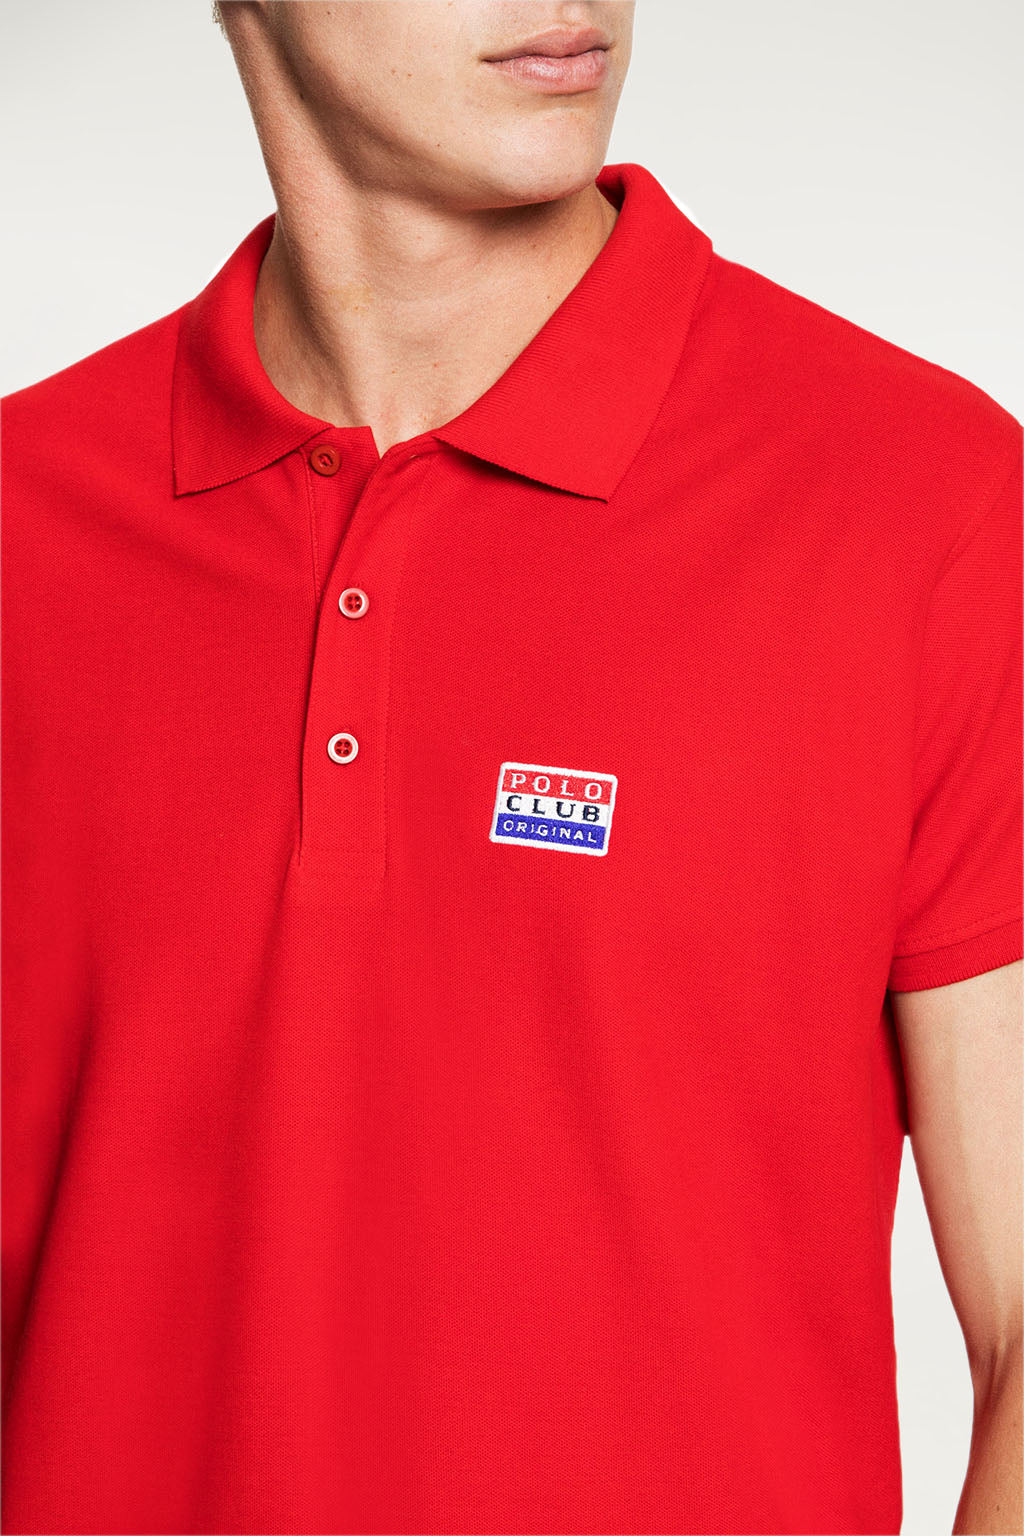 Polo BIG TITLE PATCH Rojo